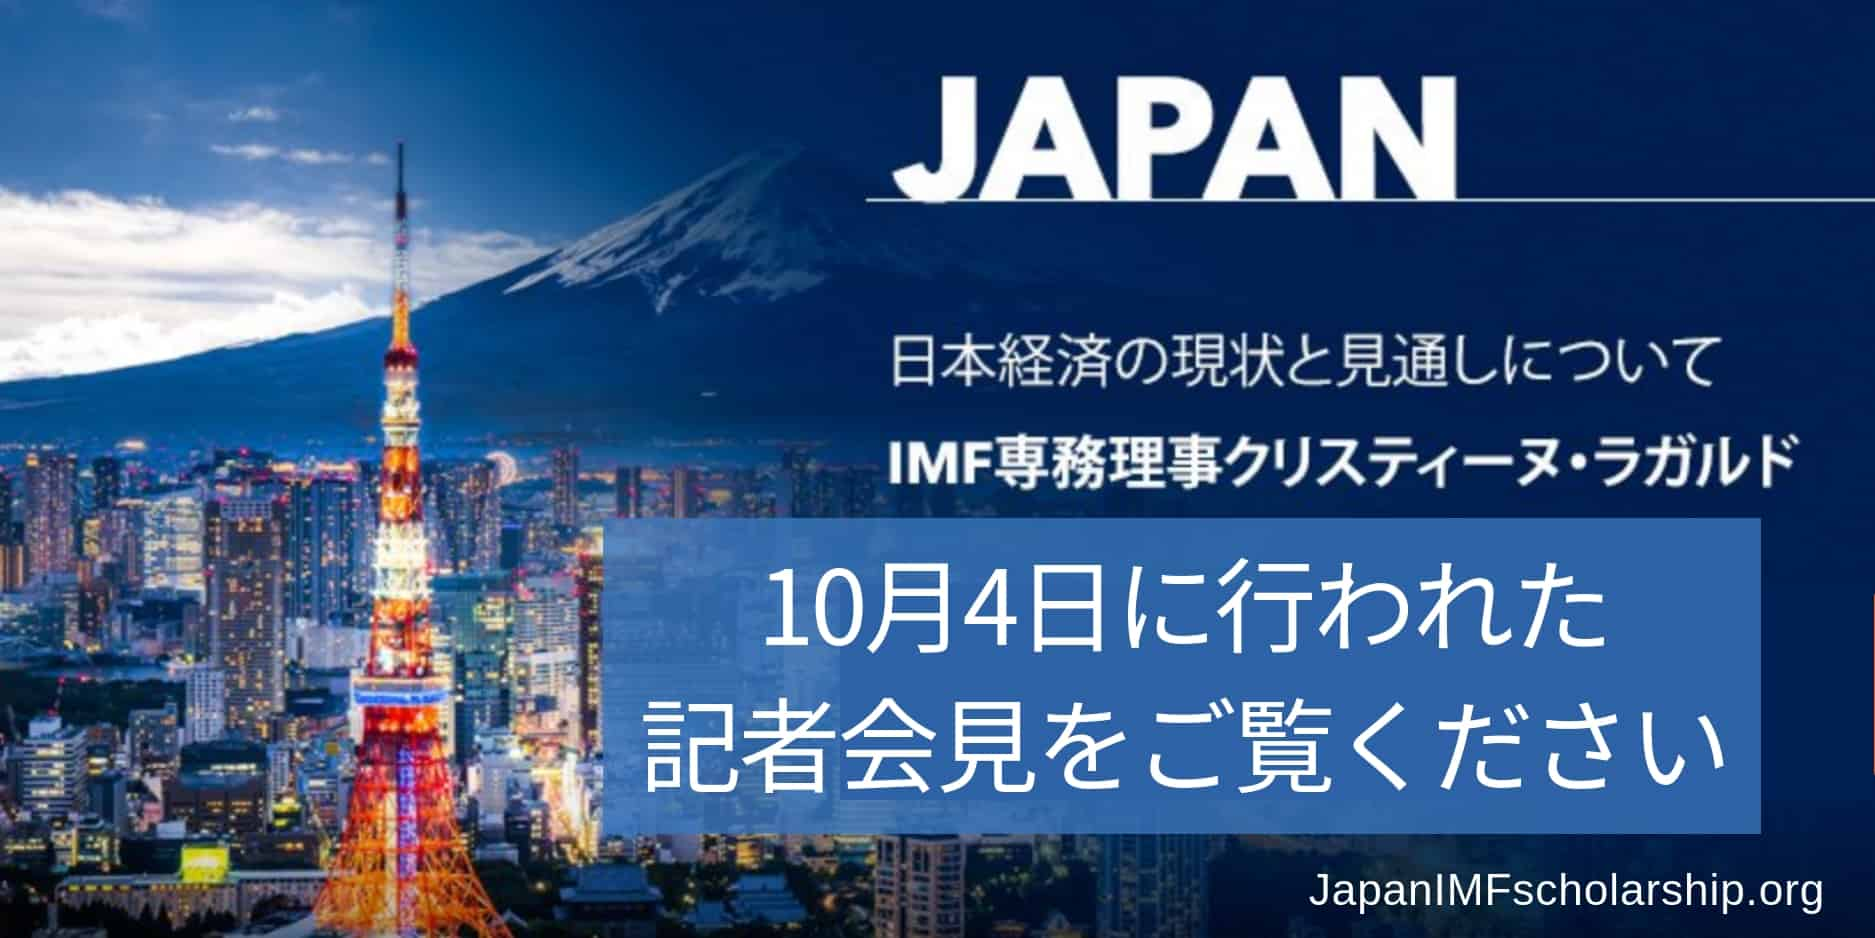 jisp imf christine lagarde press conference on the conclusion of the mission for the 2018 article iv consultation with japan